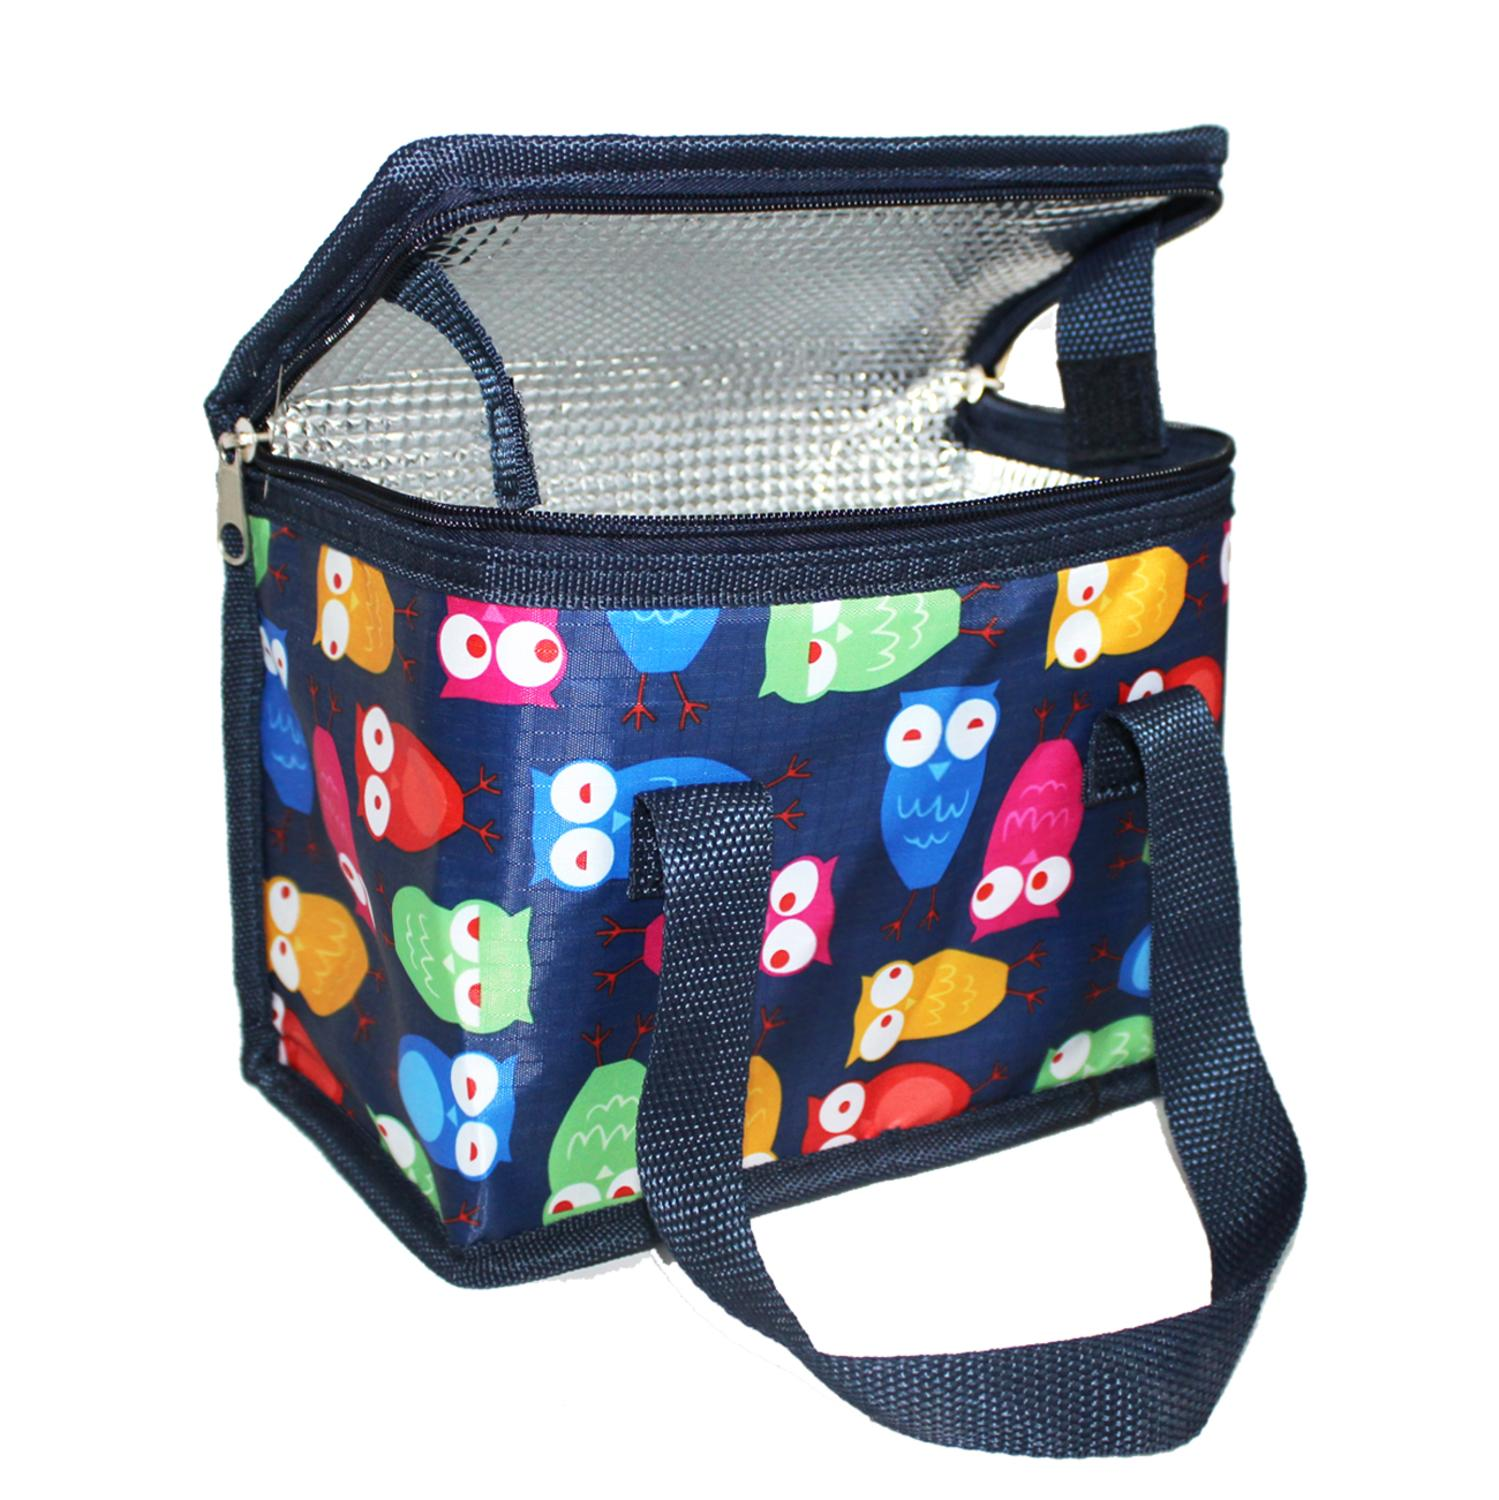 TEAMOOK  Thermal Lunch Bag Insulated Cooler Polyester Food Bag Picnic Carry Case Portable Lunch Box Blue Owl